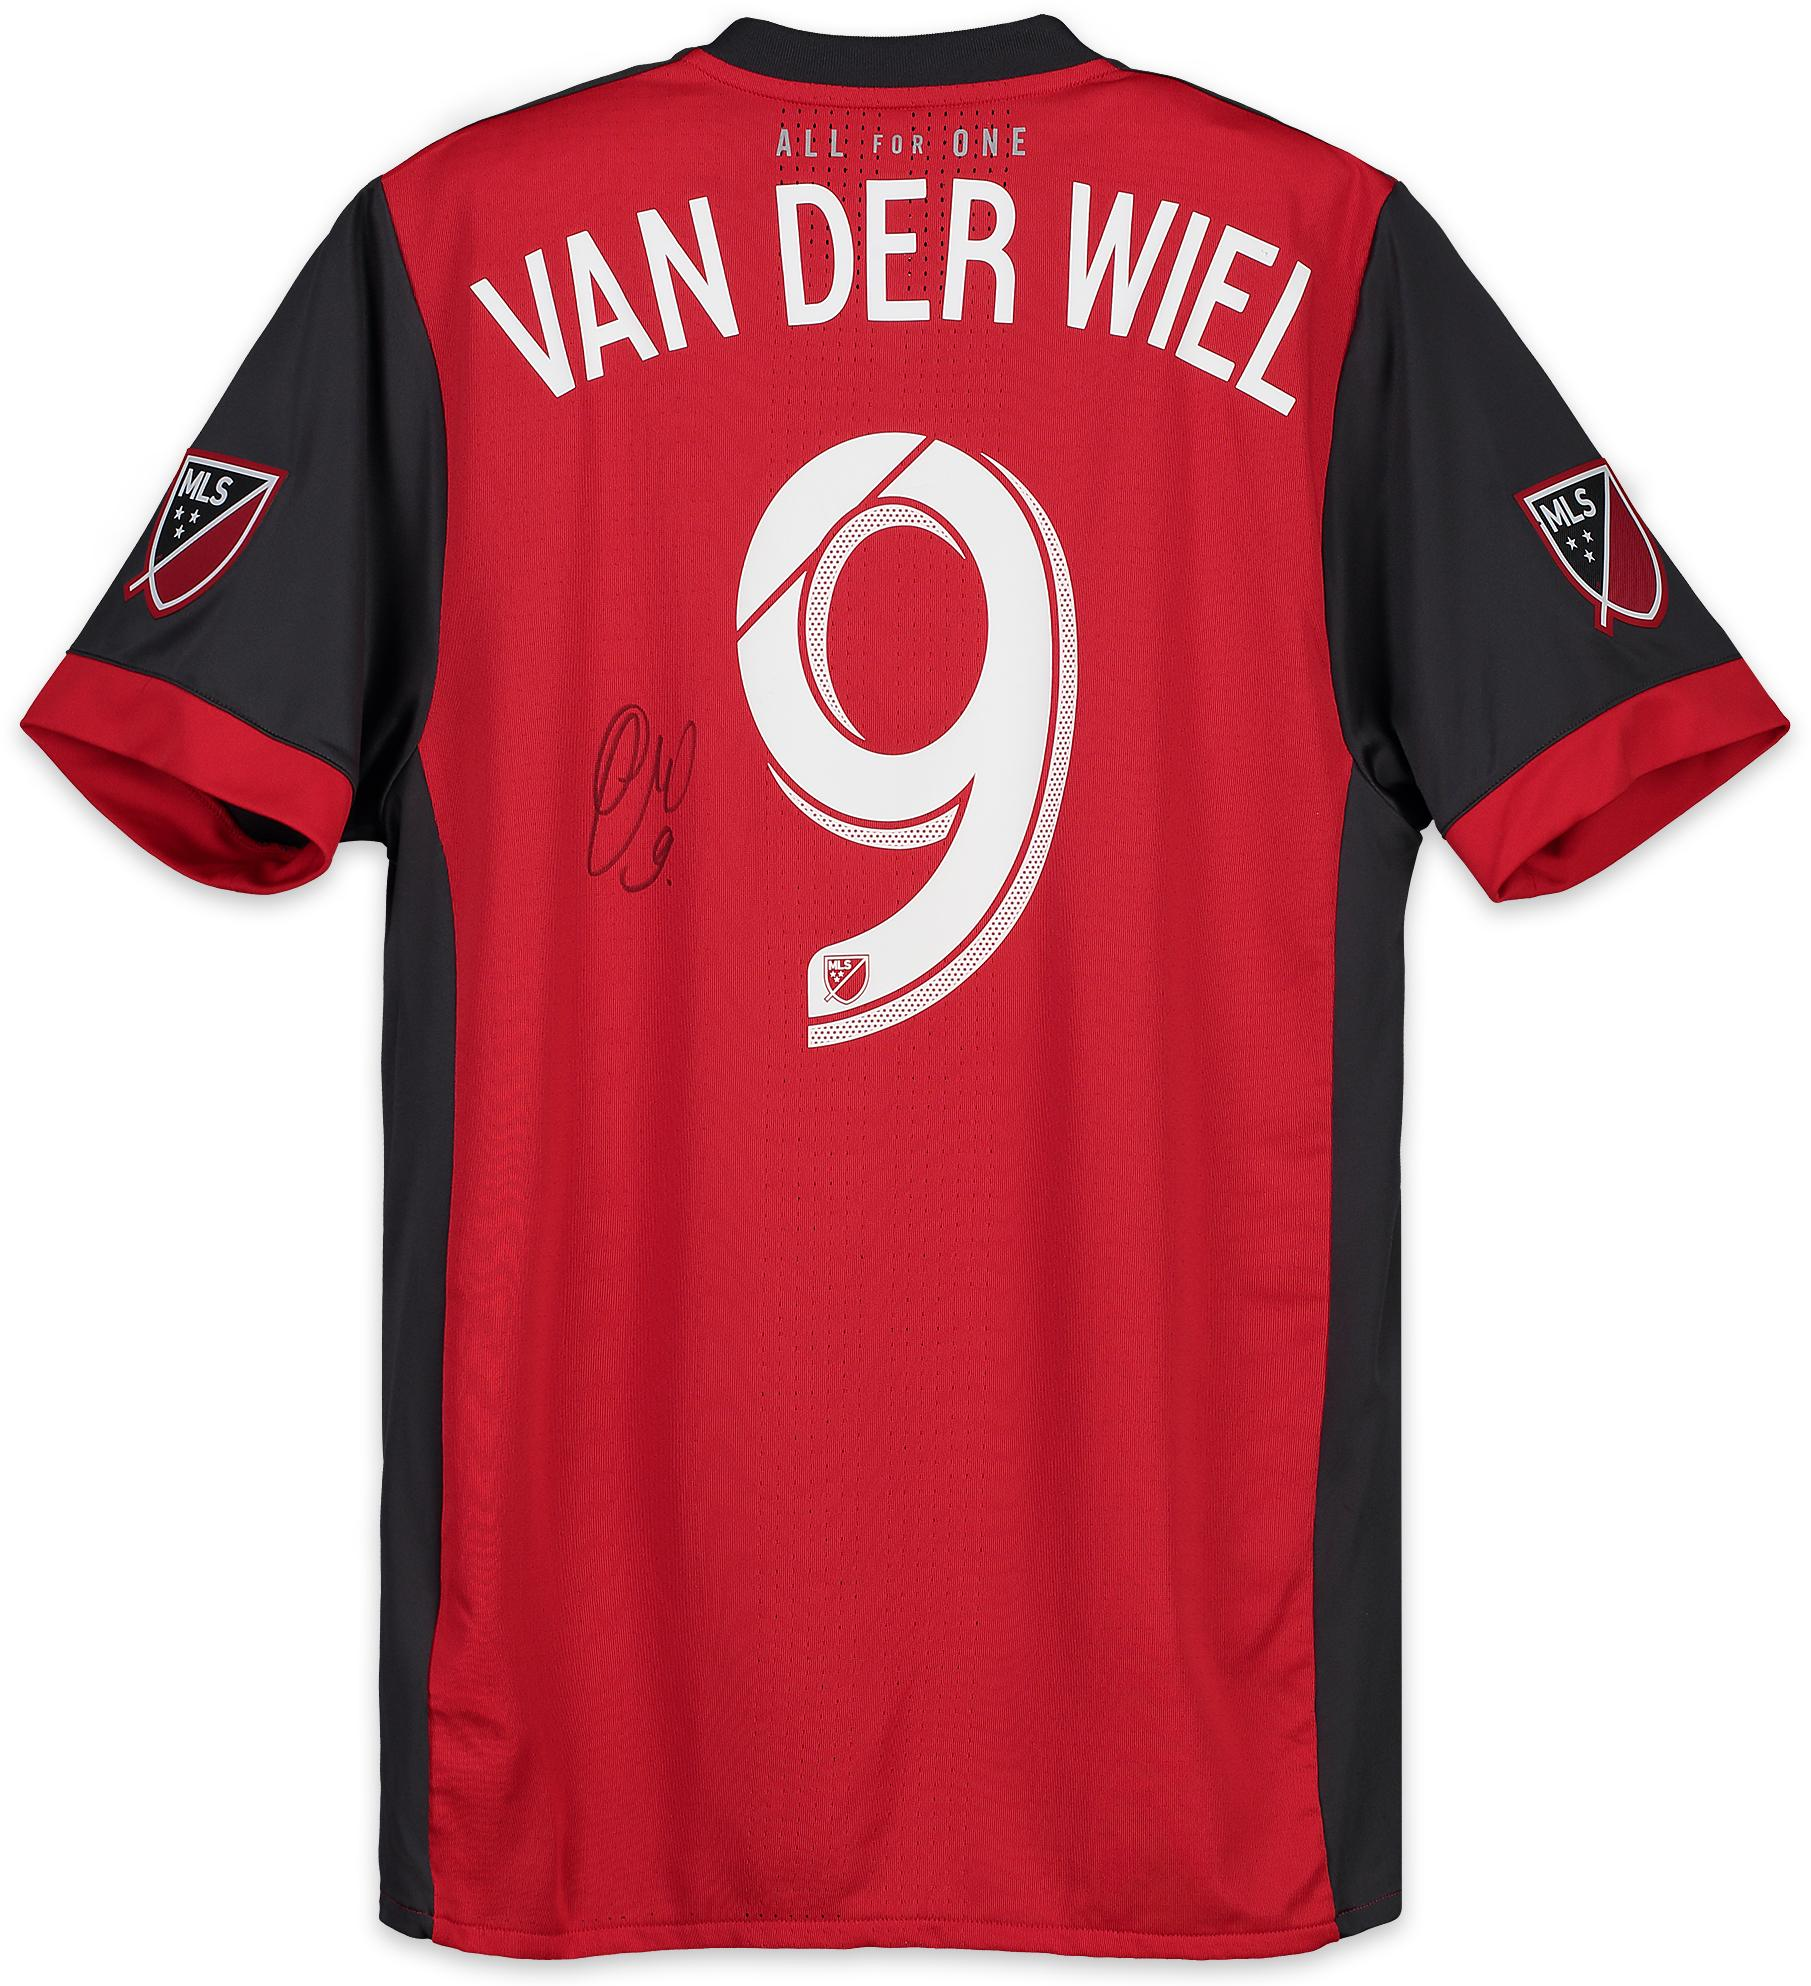 Gregory van der Weil Toronto FC Autographed Match-Used Red #9 Jersey vs. Vancouver Whitecaps on October 6, 2018 - Fanatics Authentic Certified